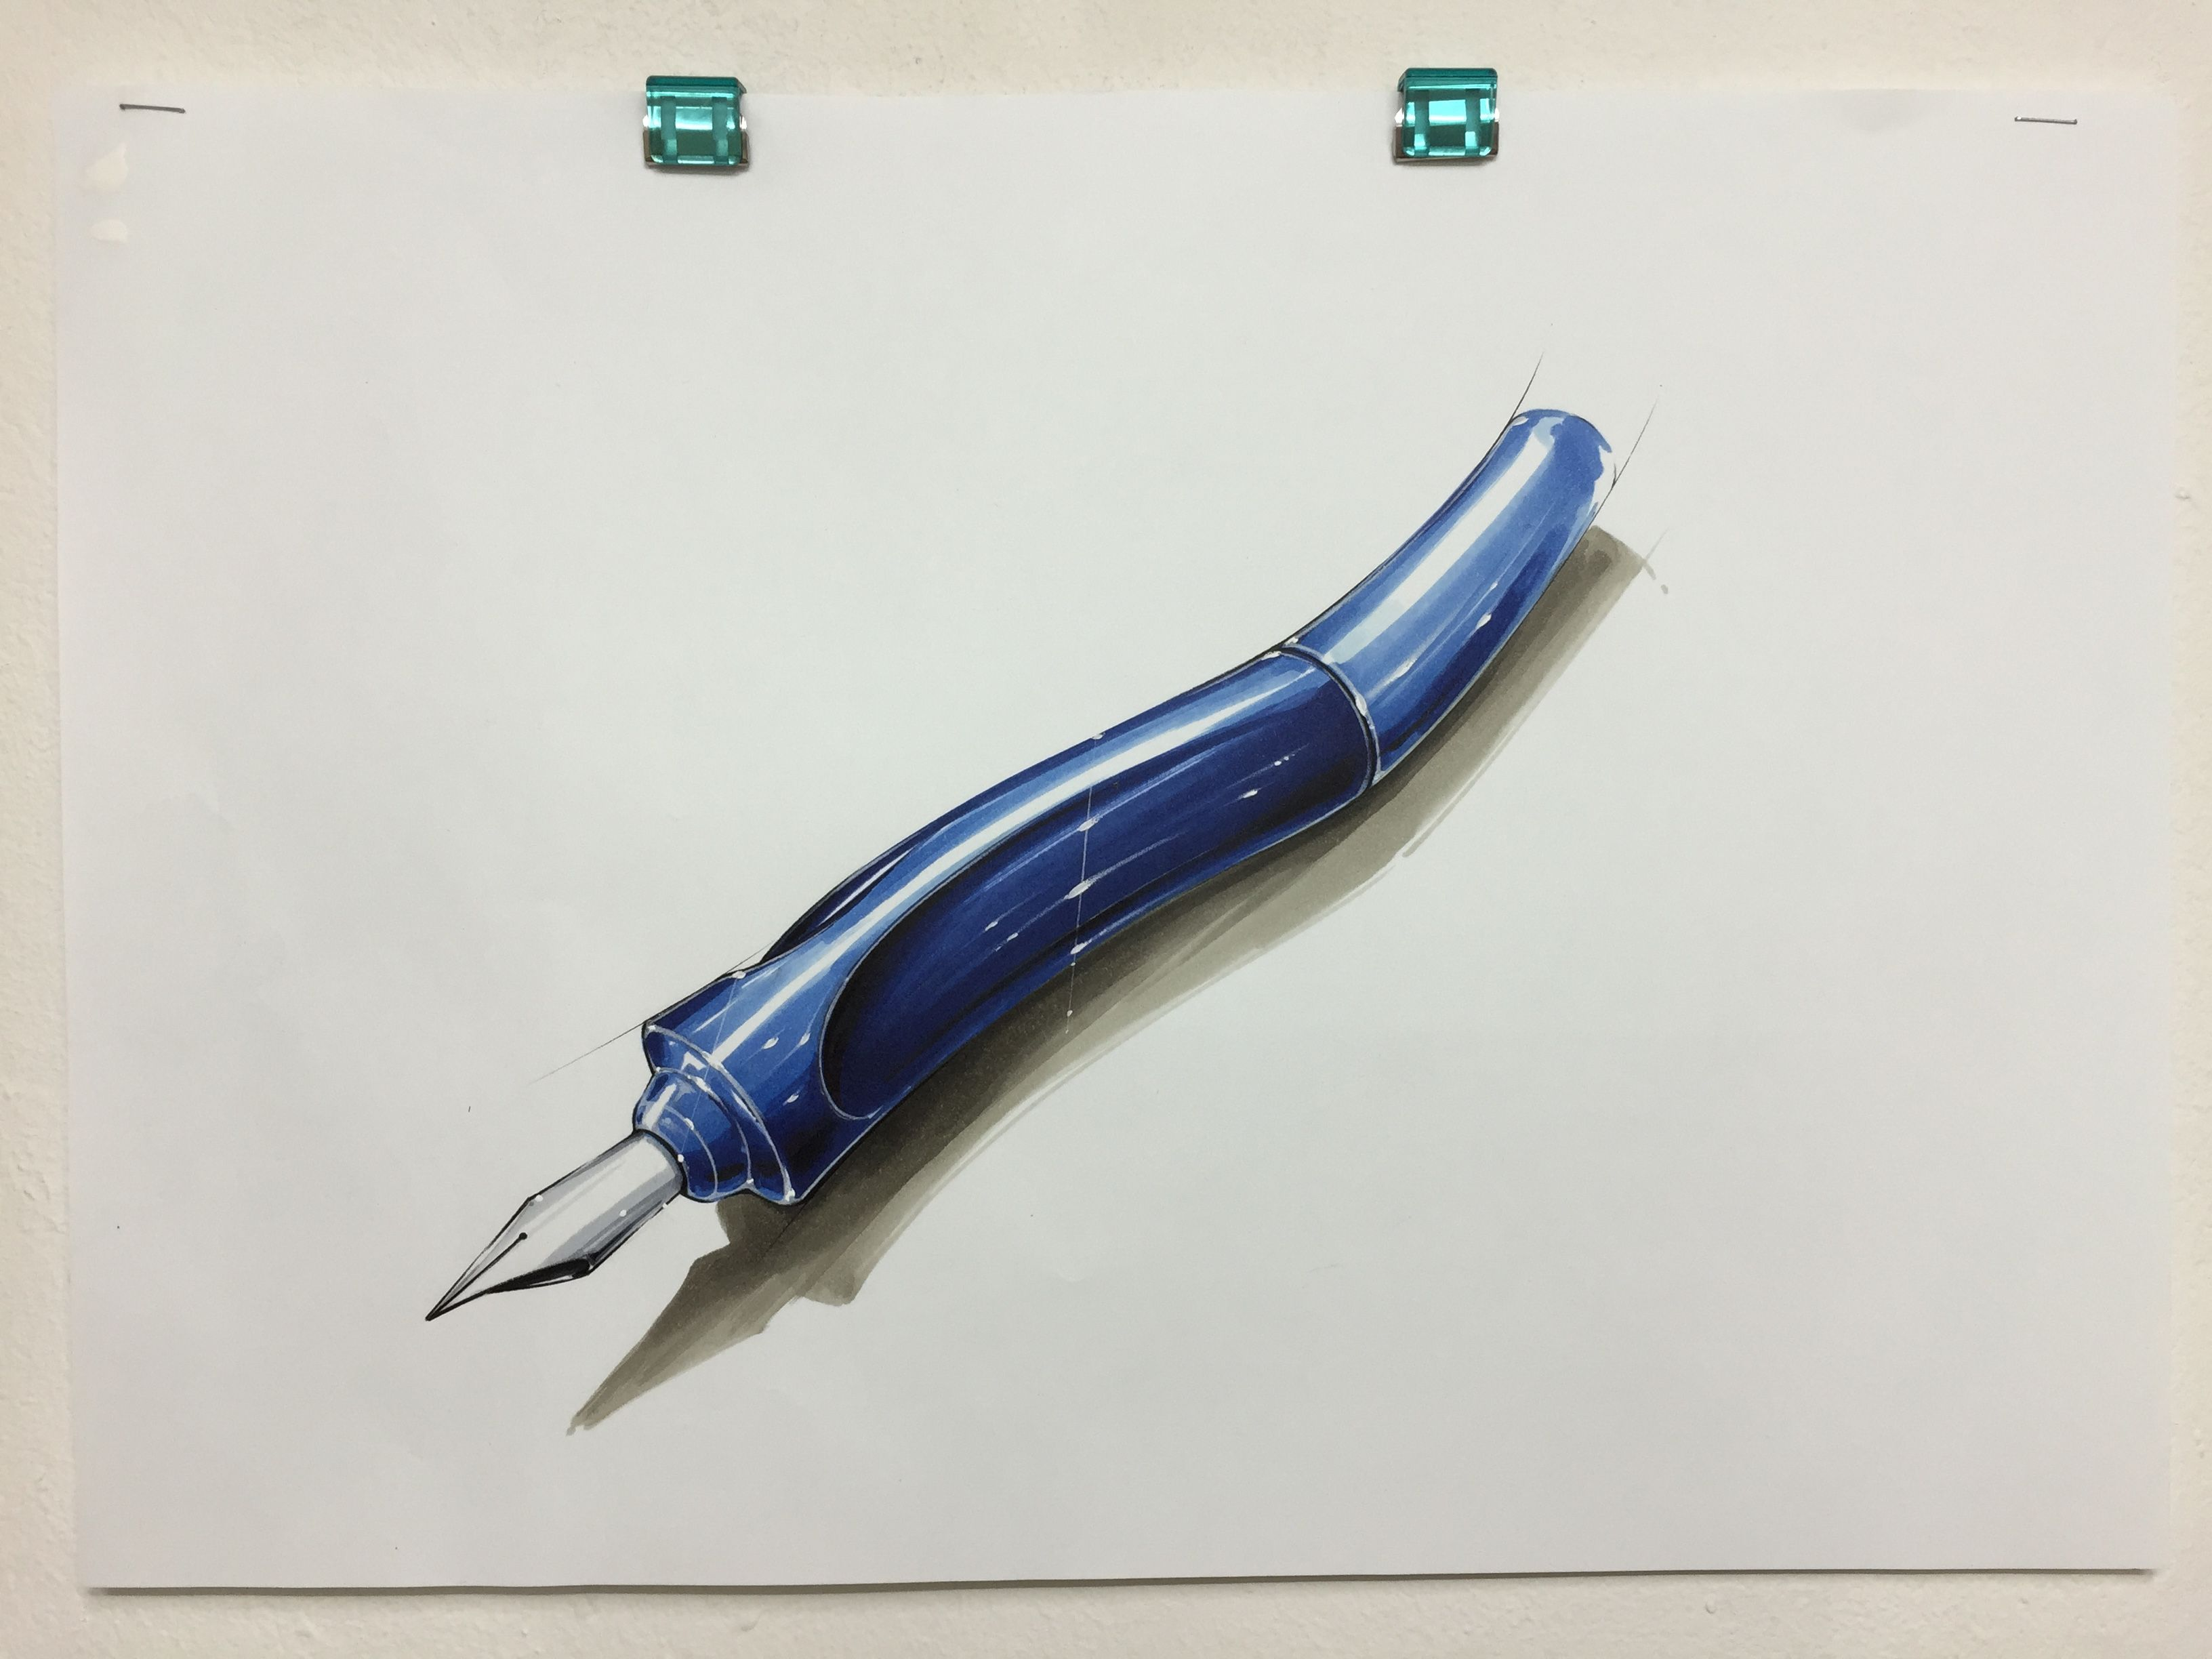 Pen sketch rendering | My sketch & marker rendering | Pinterest